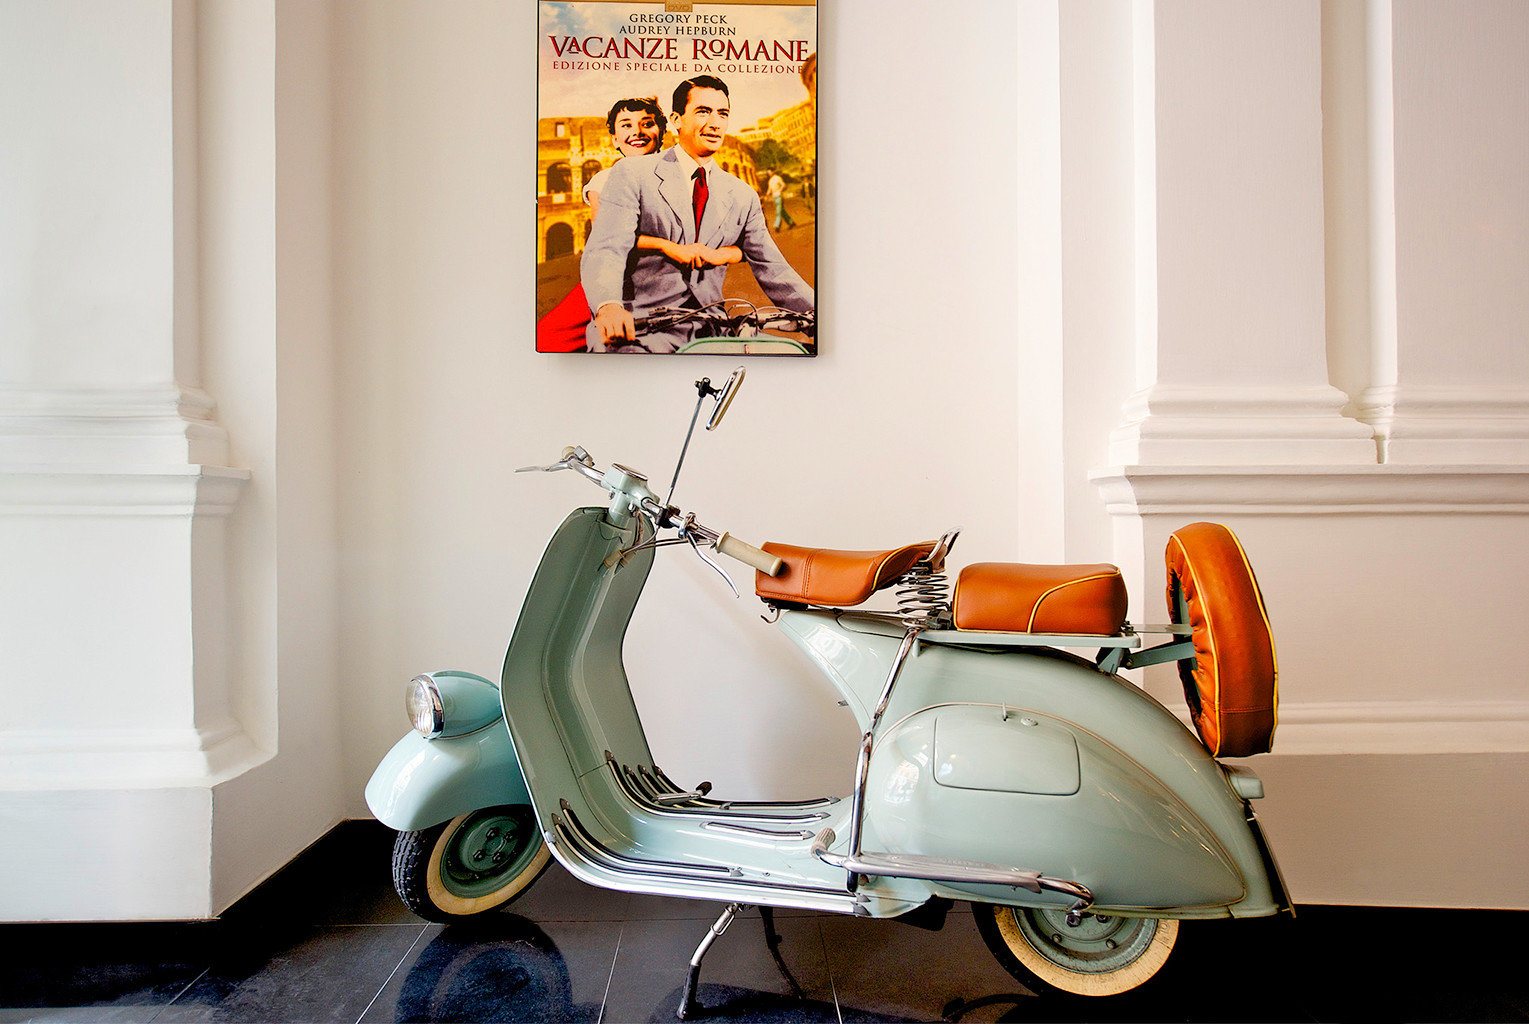 City Cultural Lobby scooter vespa parked